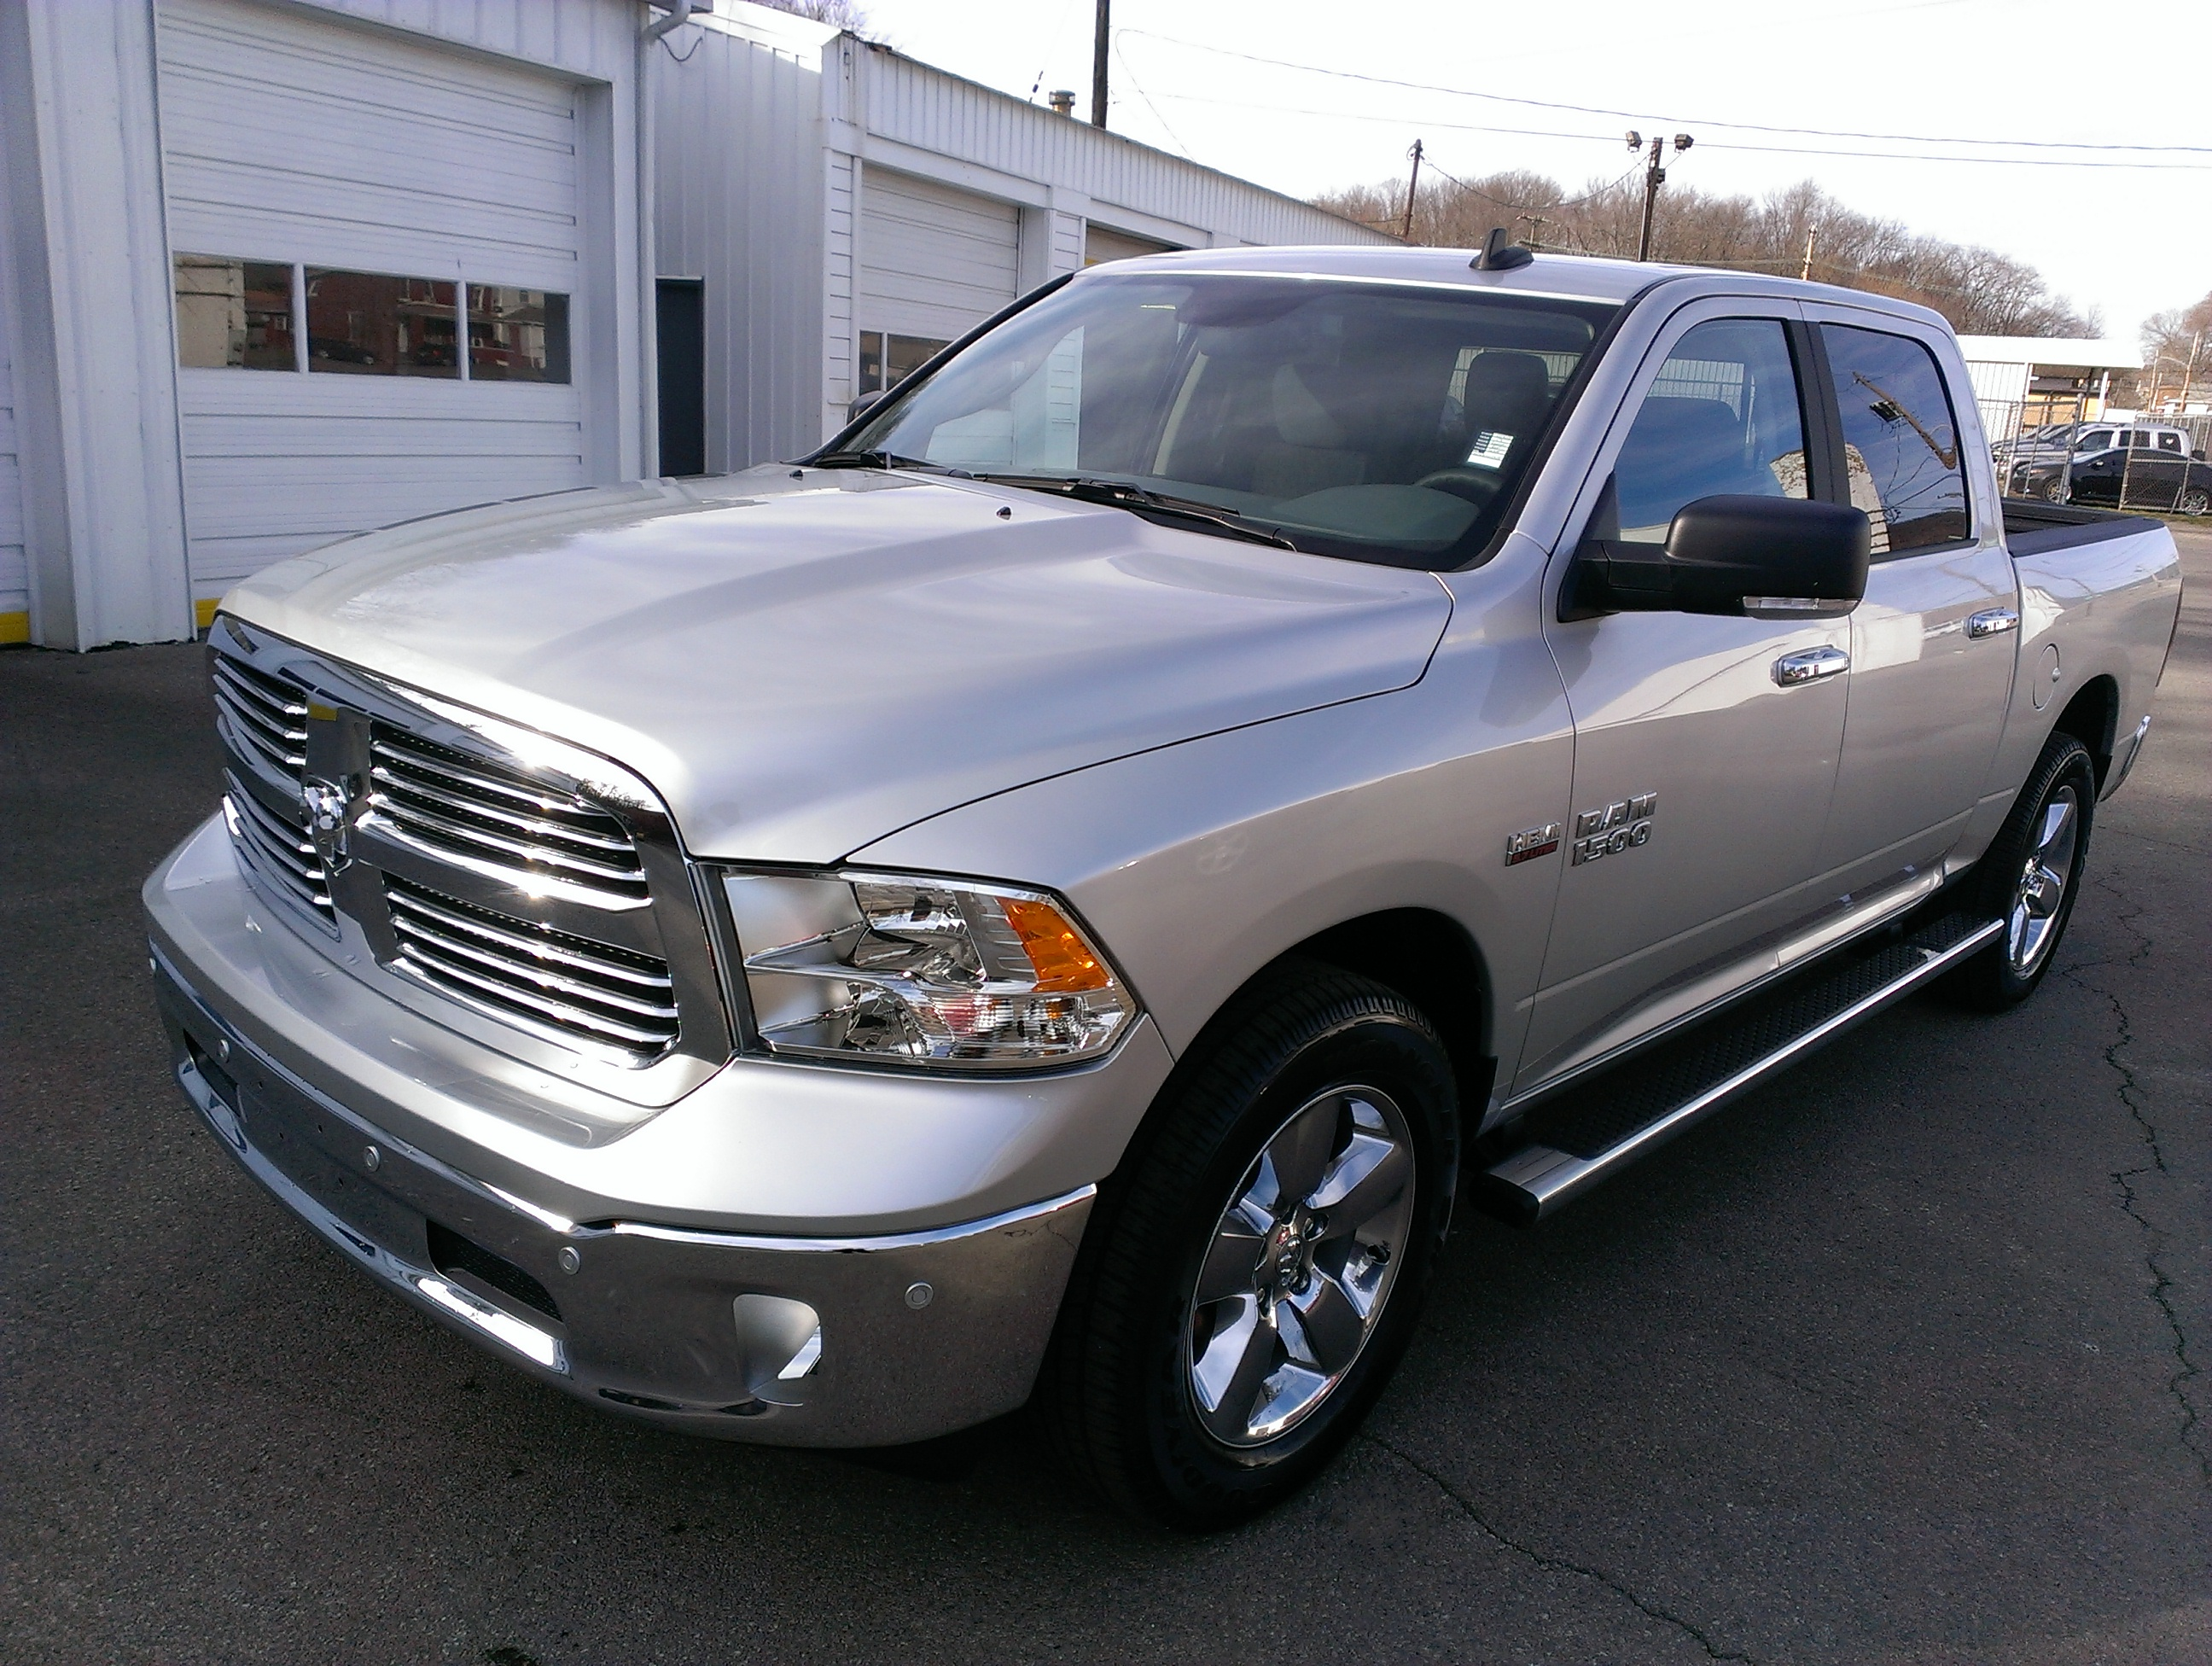 New Chrysler Dodge Jeep Ram In Harrisburg Pa Autos Post